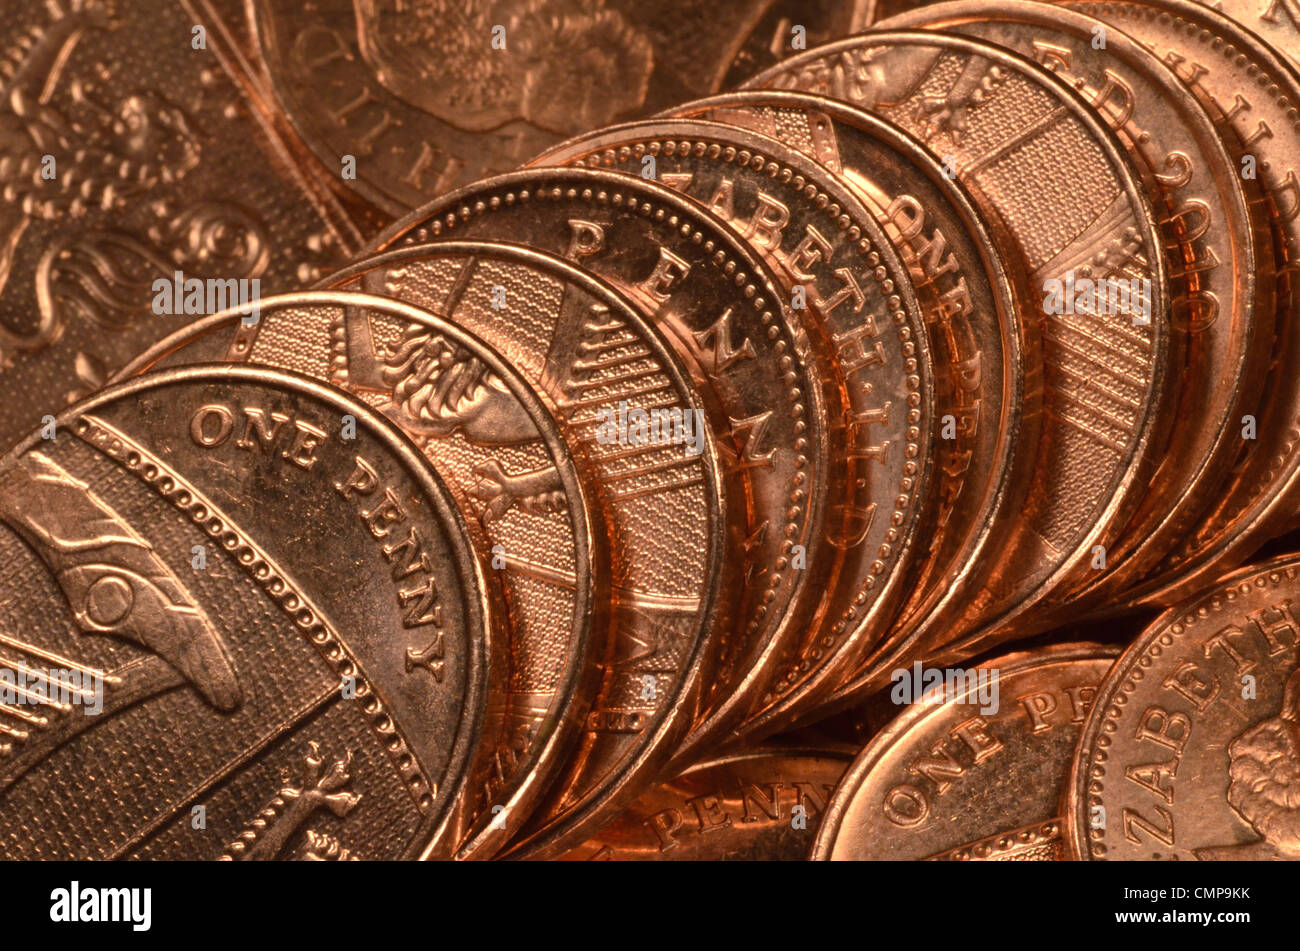 Close detail of UK one pence (1p) coin, single pennies. - Stock Image